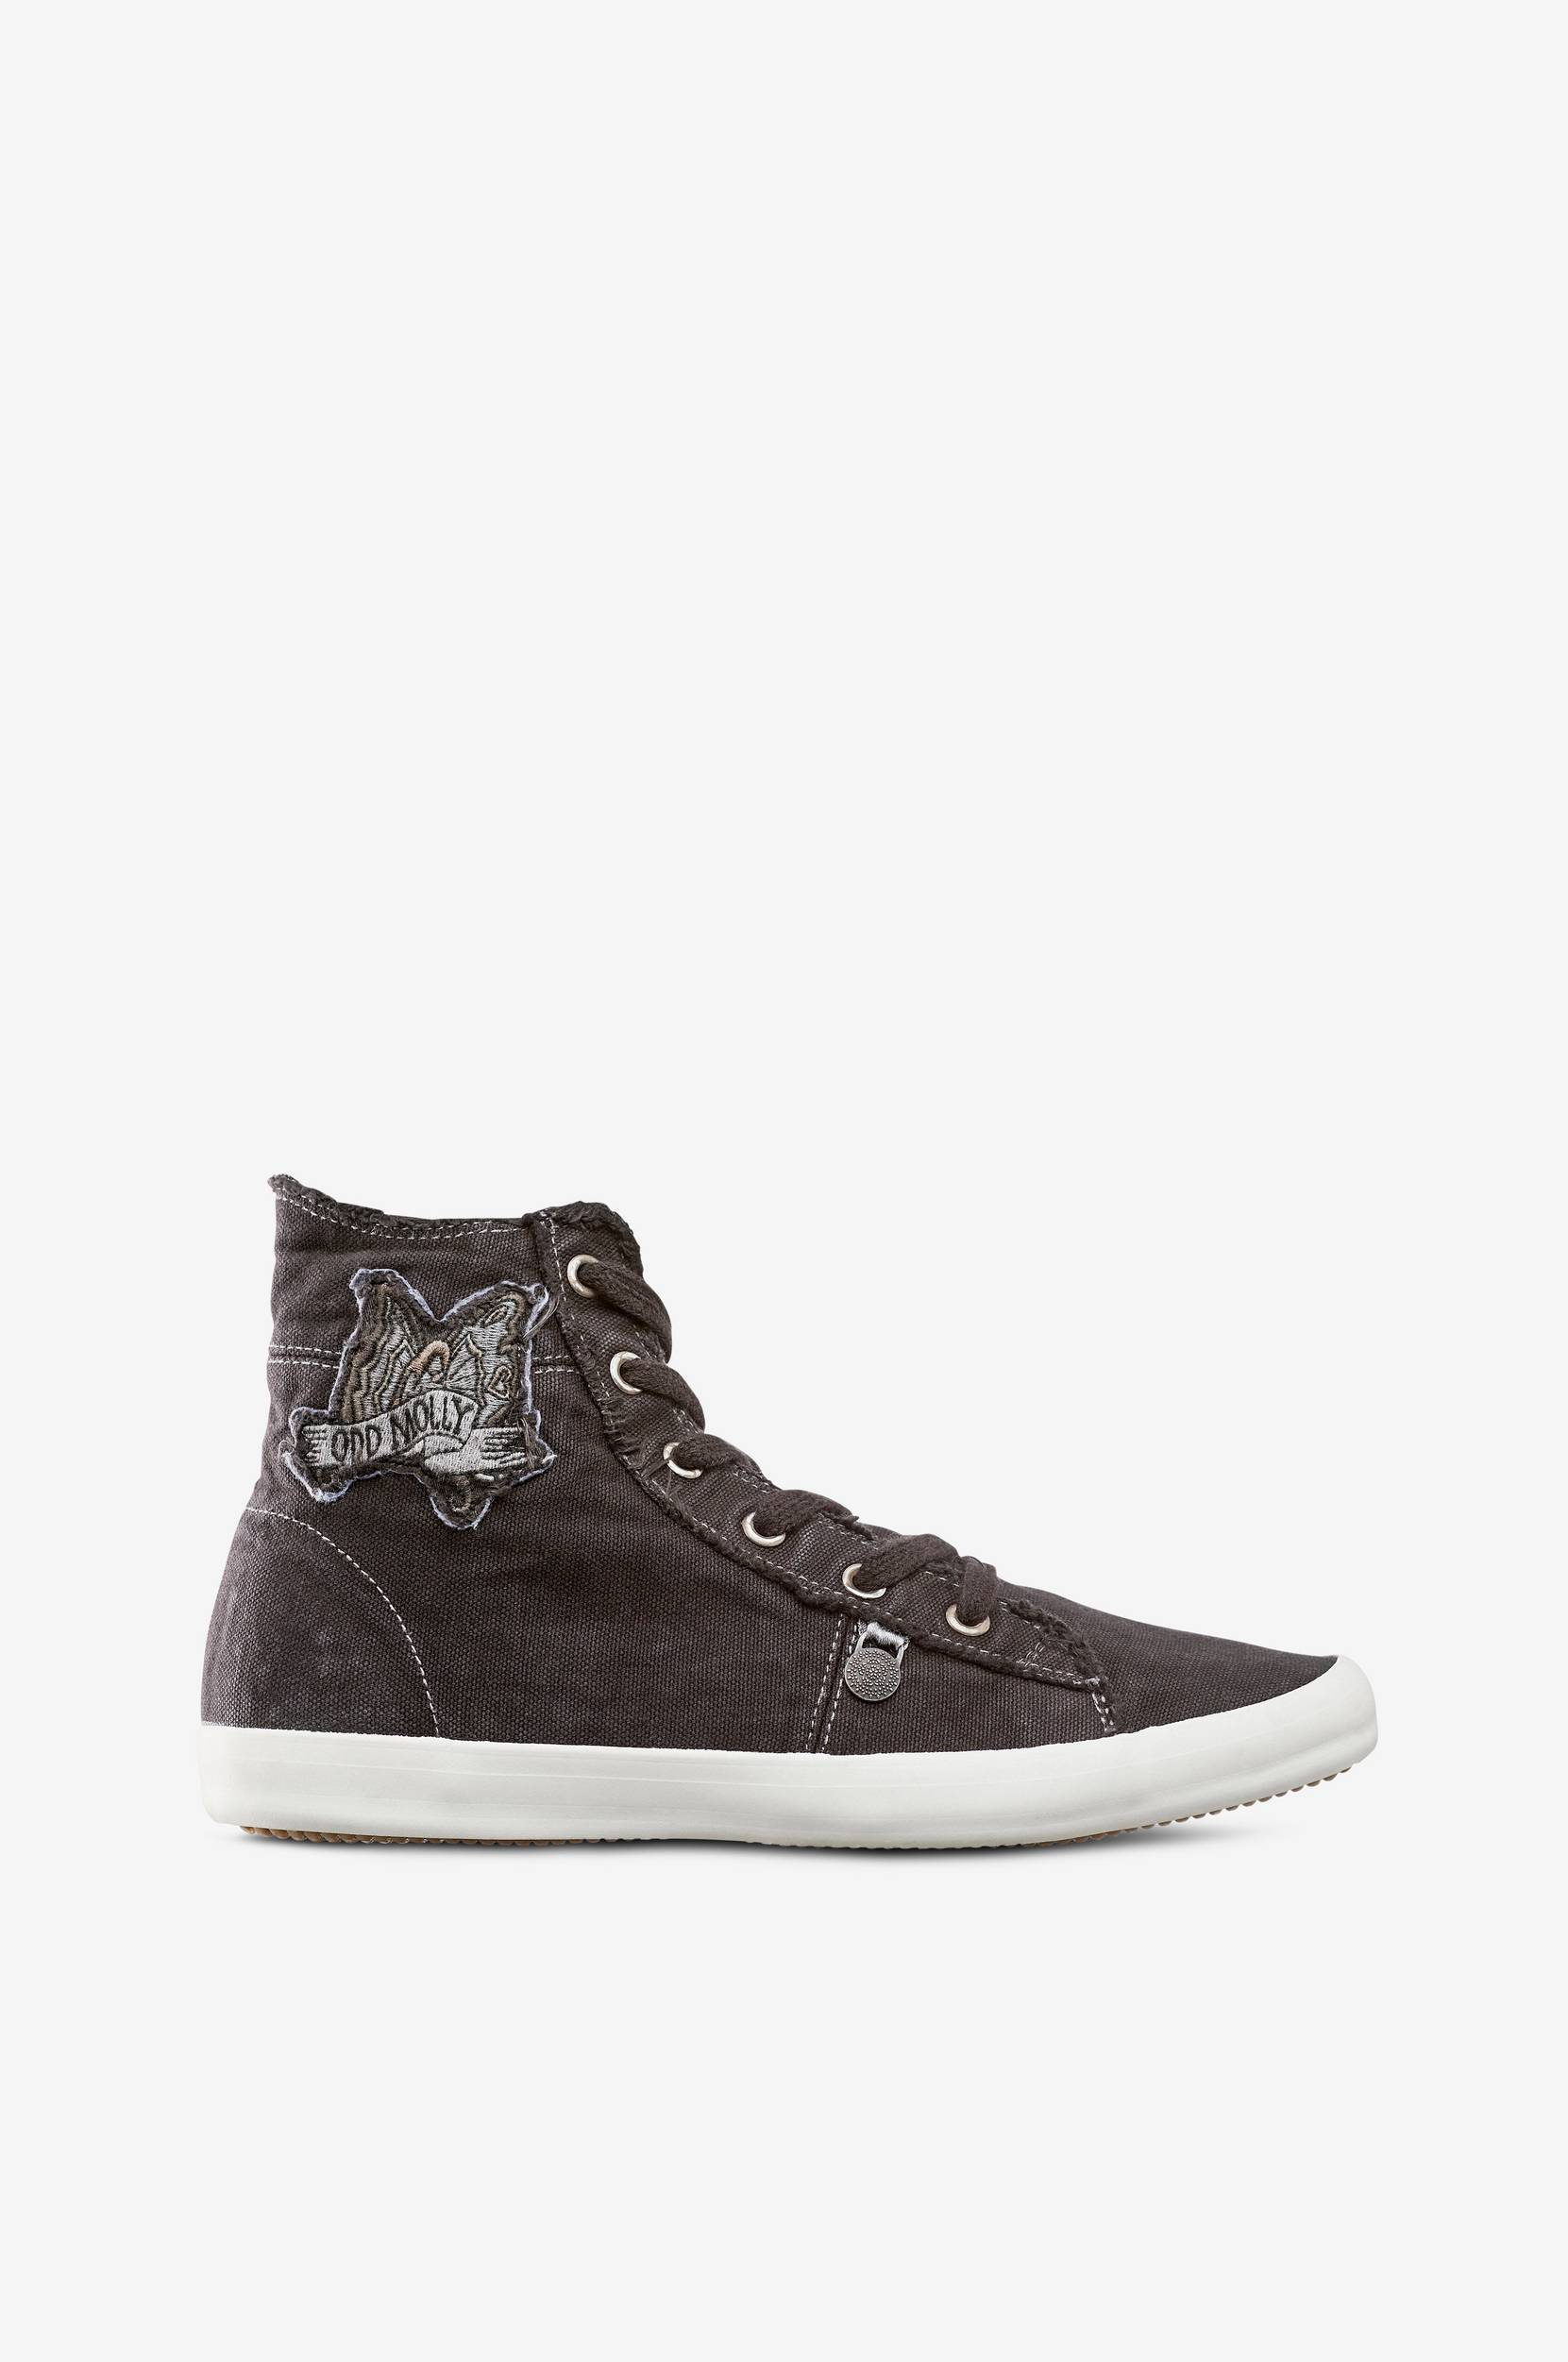 Sneakers Butterfly High Odd Molly Sneakers til Kvinder i Sort